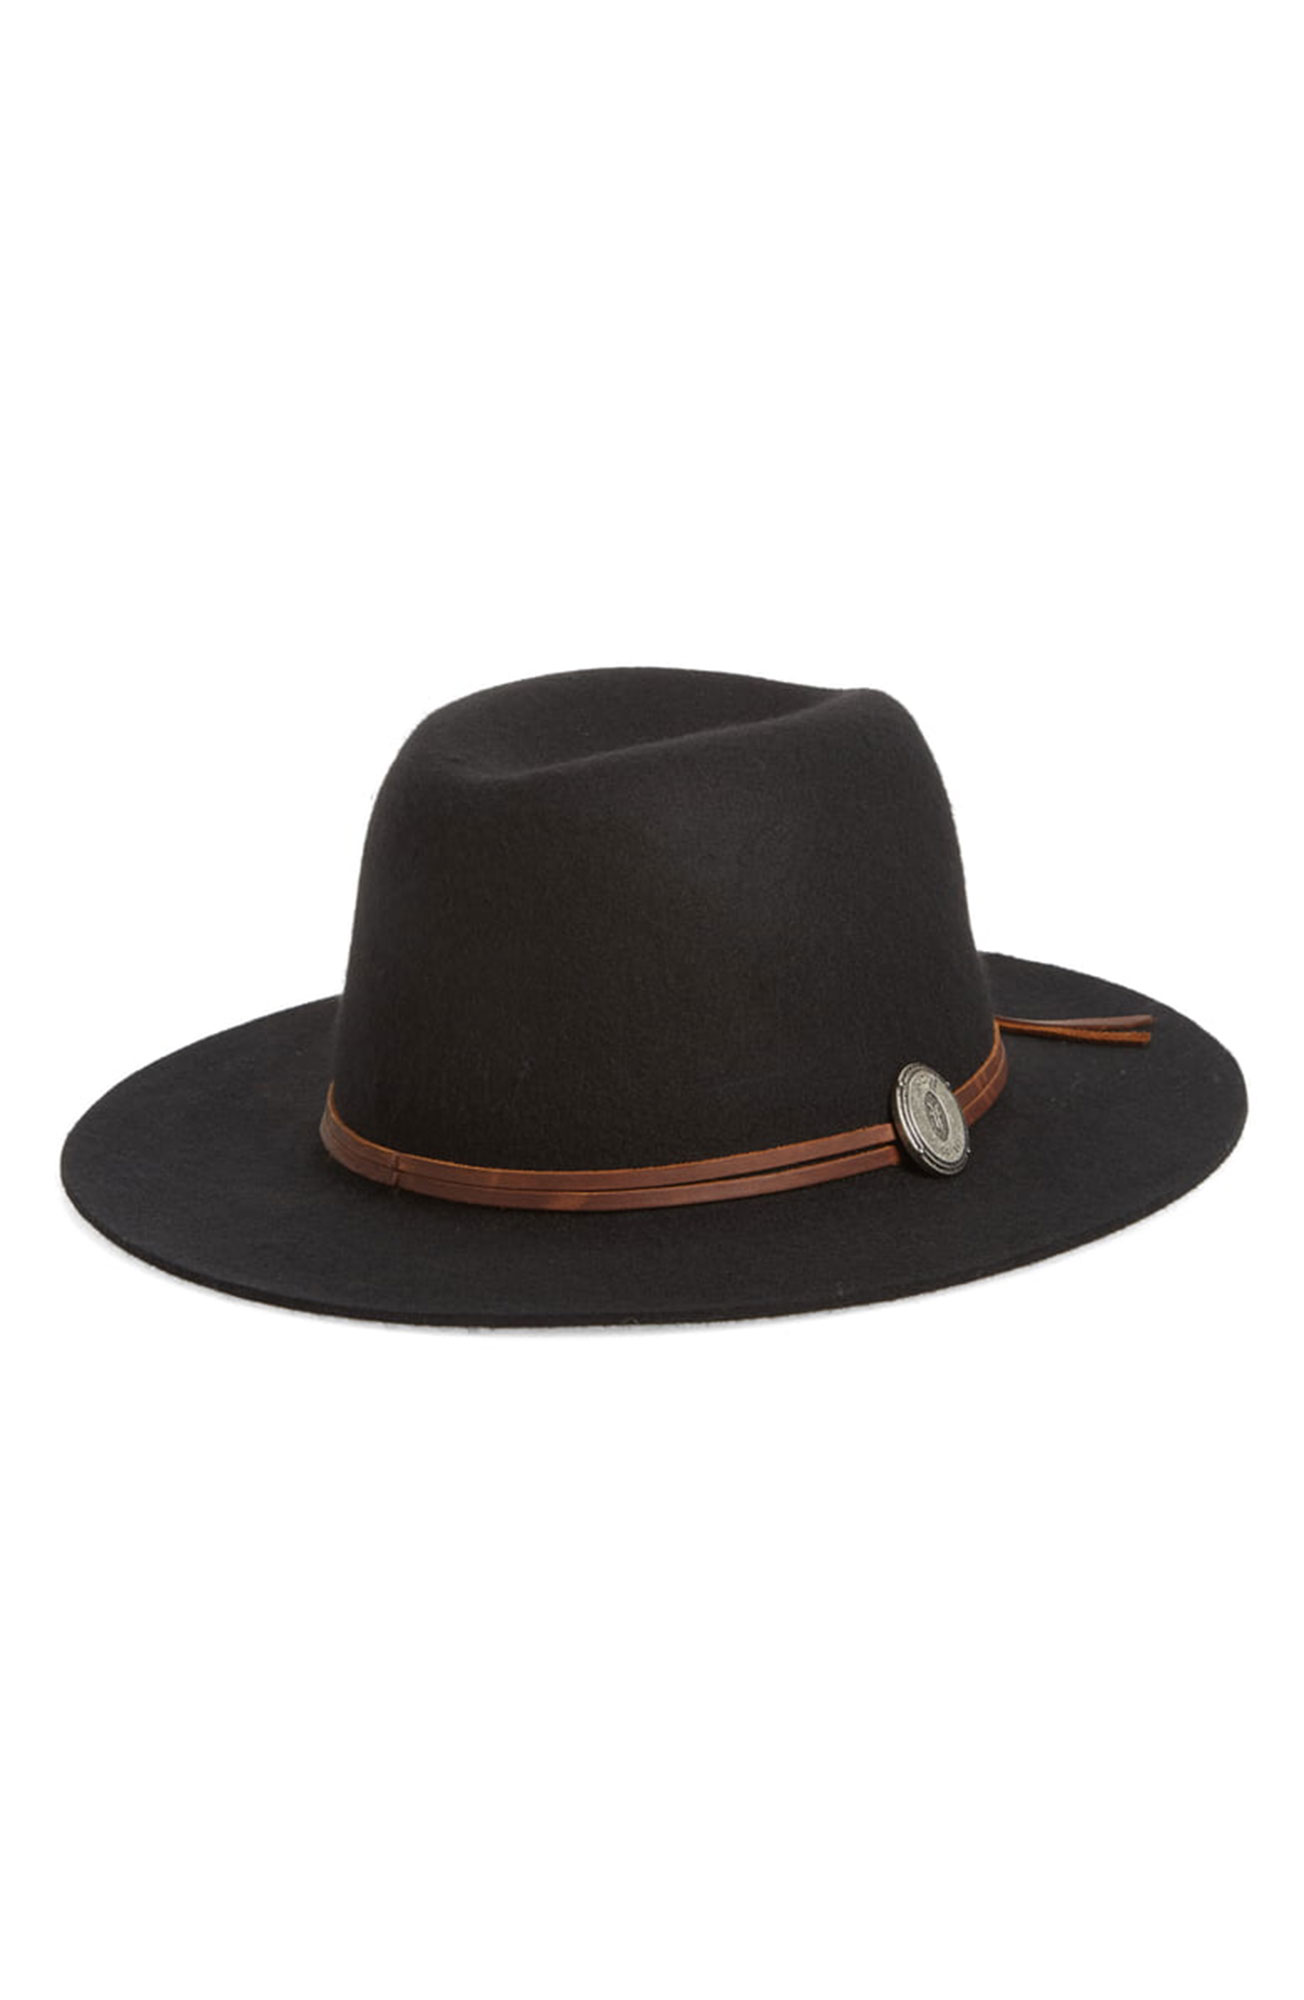 7 Black Panama Hats Inspired by Gigi Hadid¹s Œ90s Wedding Style - A logo medallion and double-wrap leather band are stylish additions to this wool- and felt-blend topper. $128, nordstrom.com